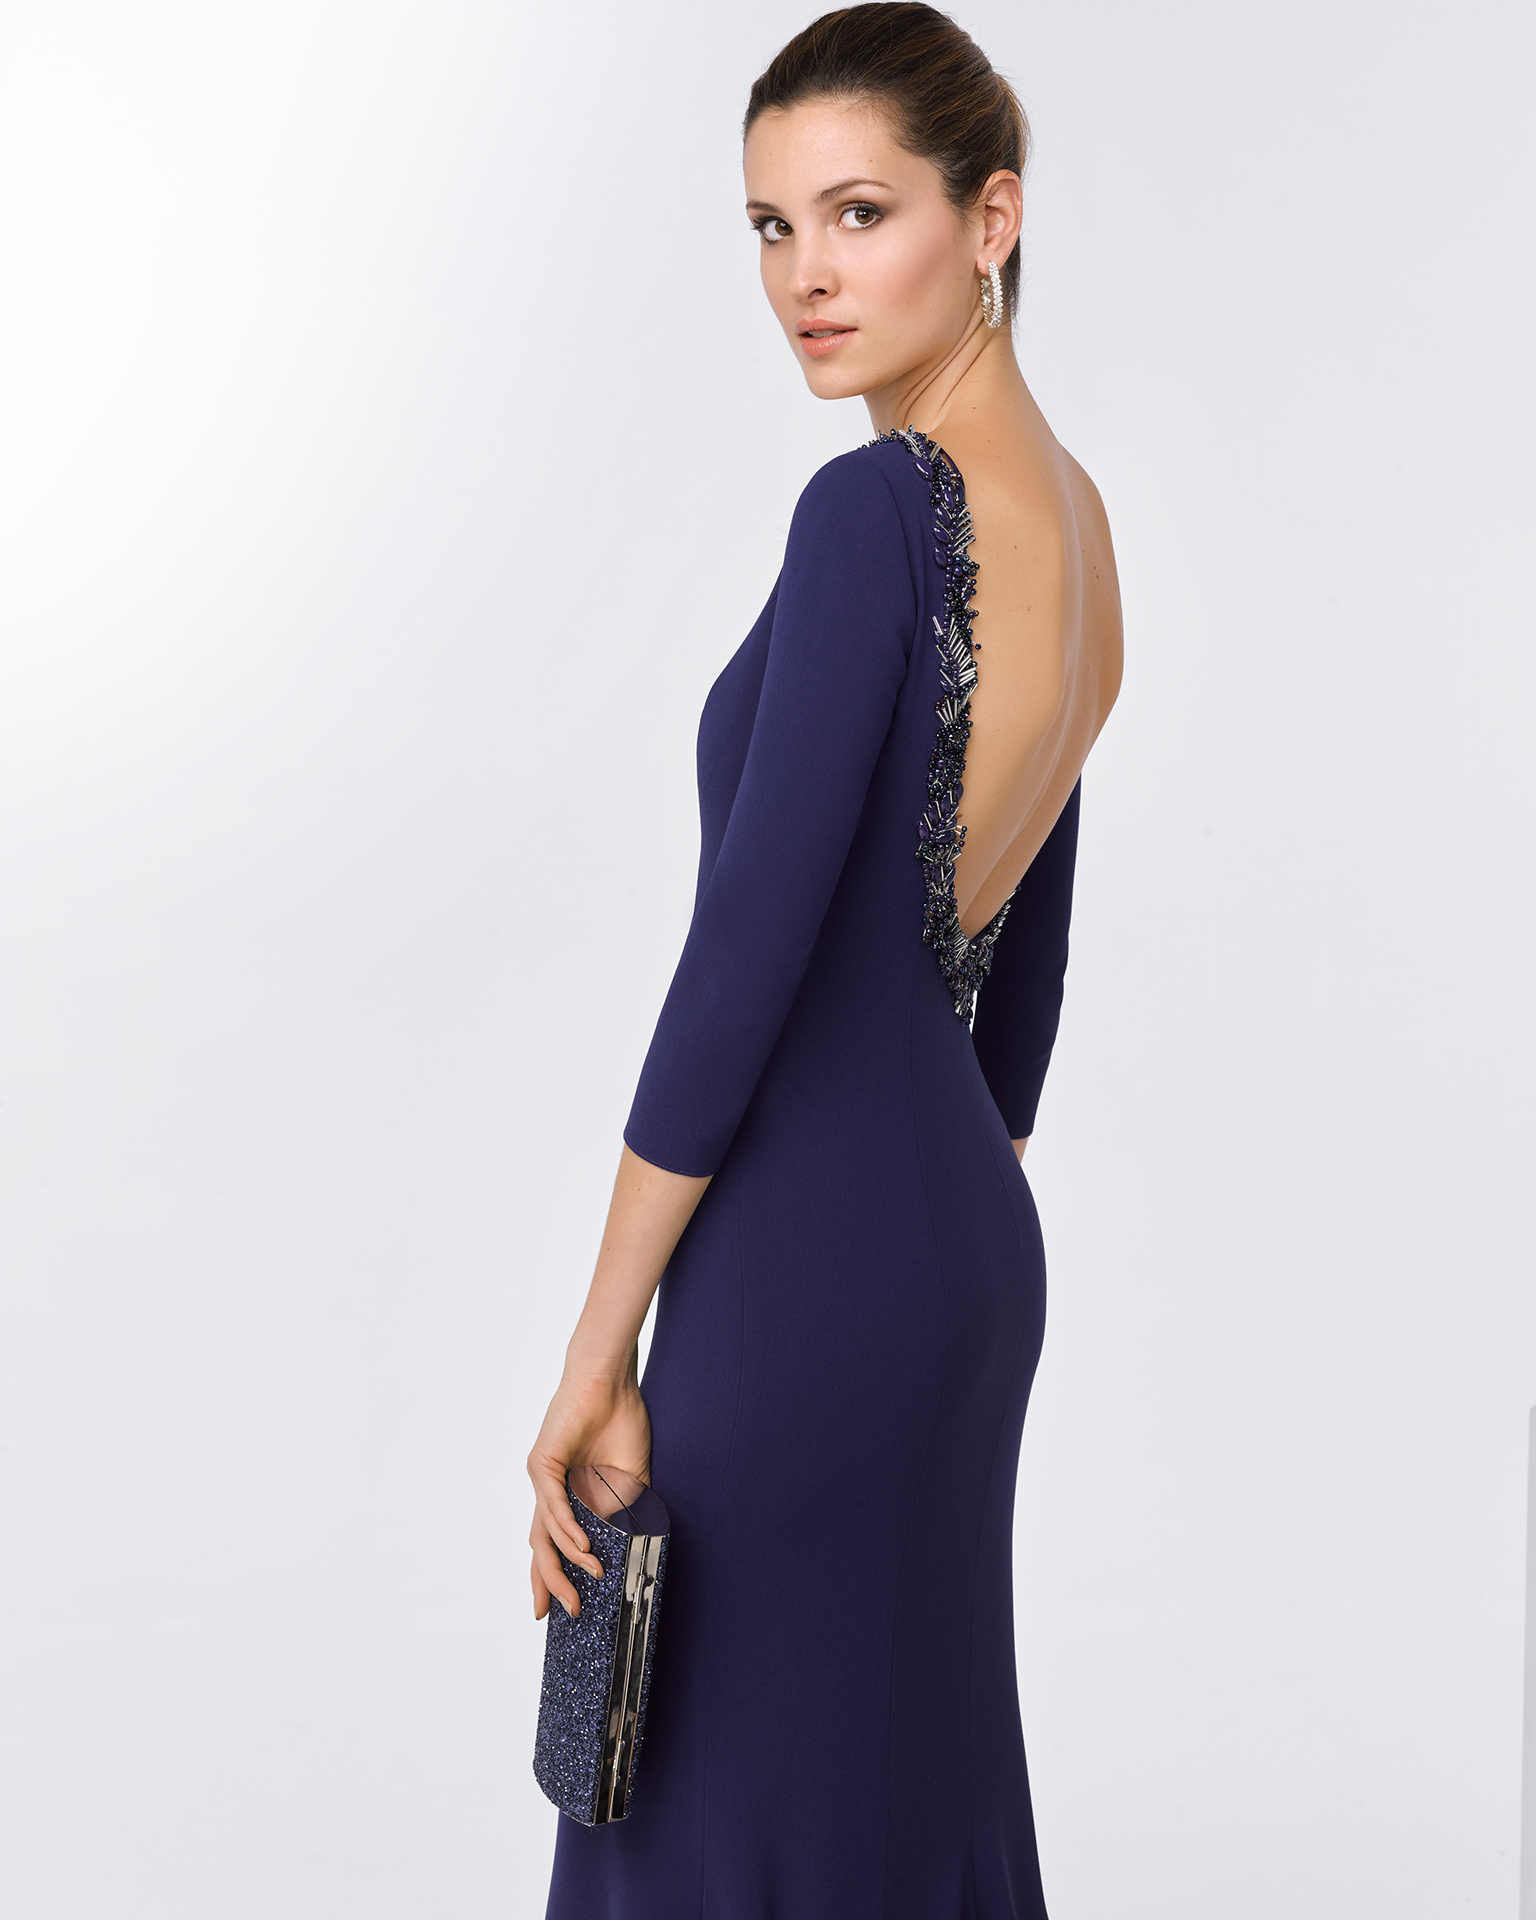 Long beaded crepe cocktail dress with three-quarter sleeves and open back. Available in navy blue, cobalt, red and green. 2018 FIESTA AIRE BARCELONA Collection.